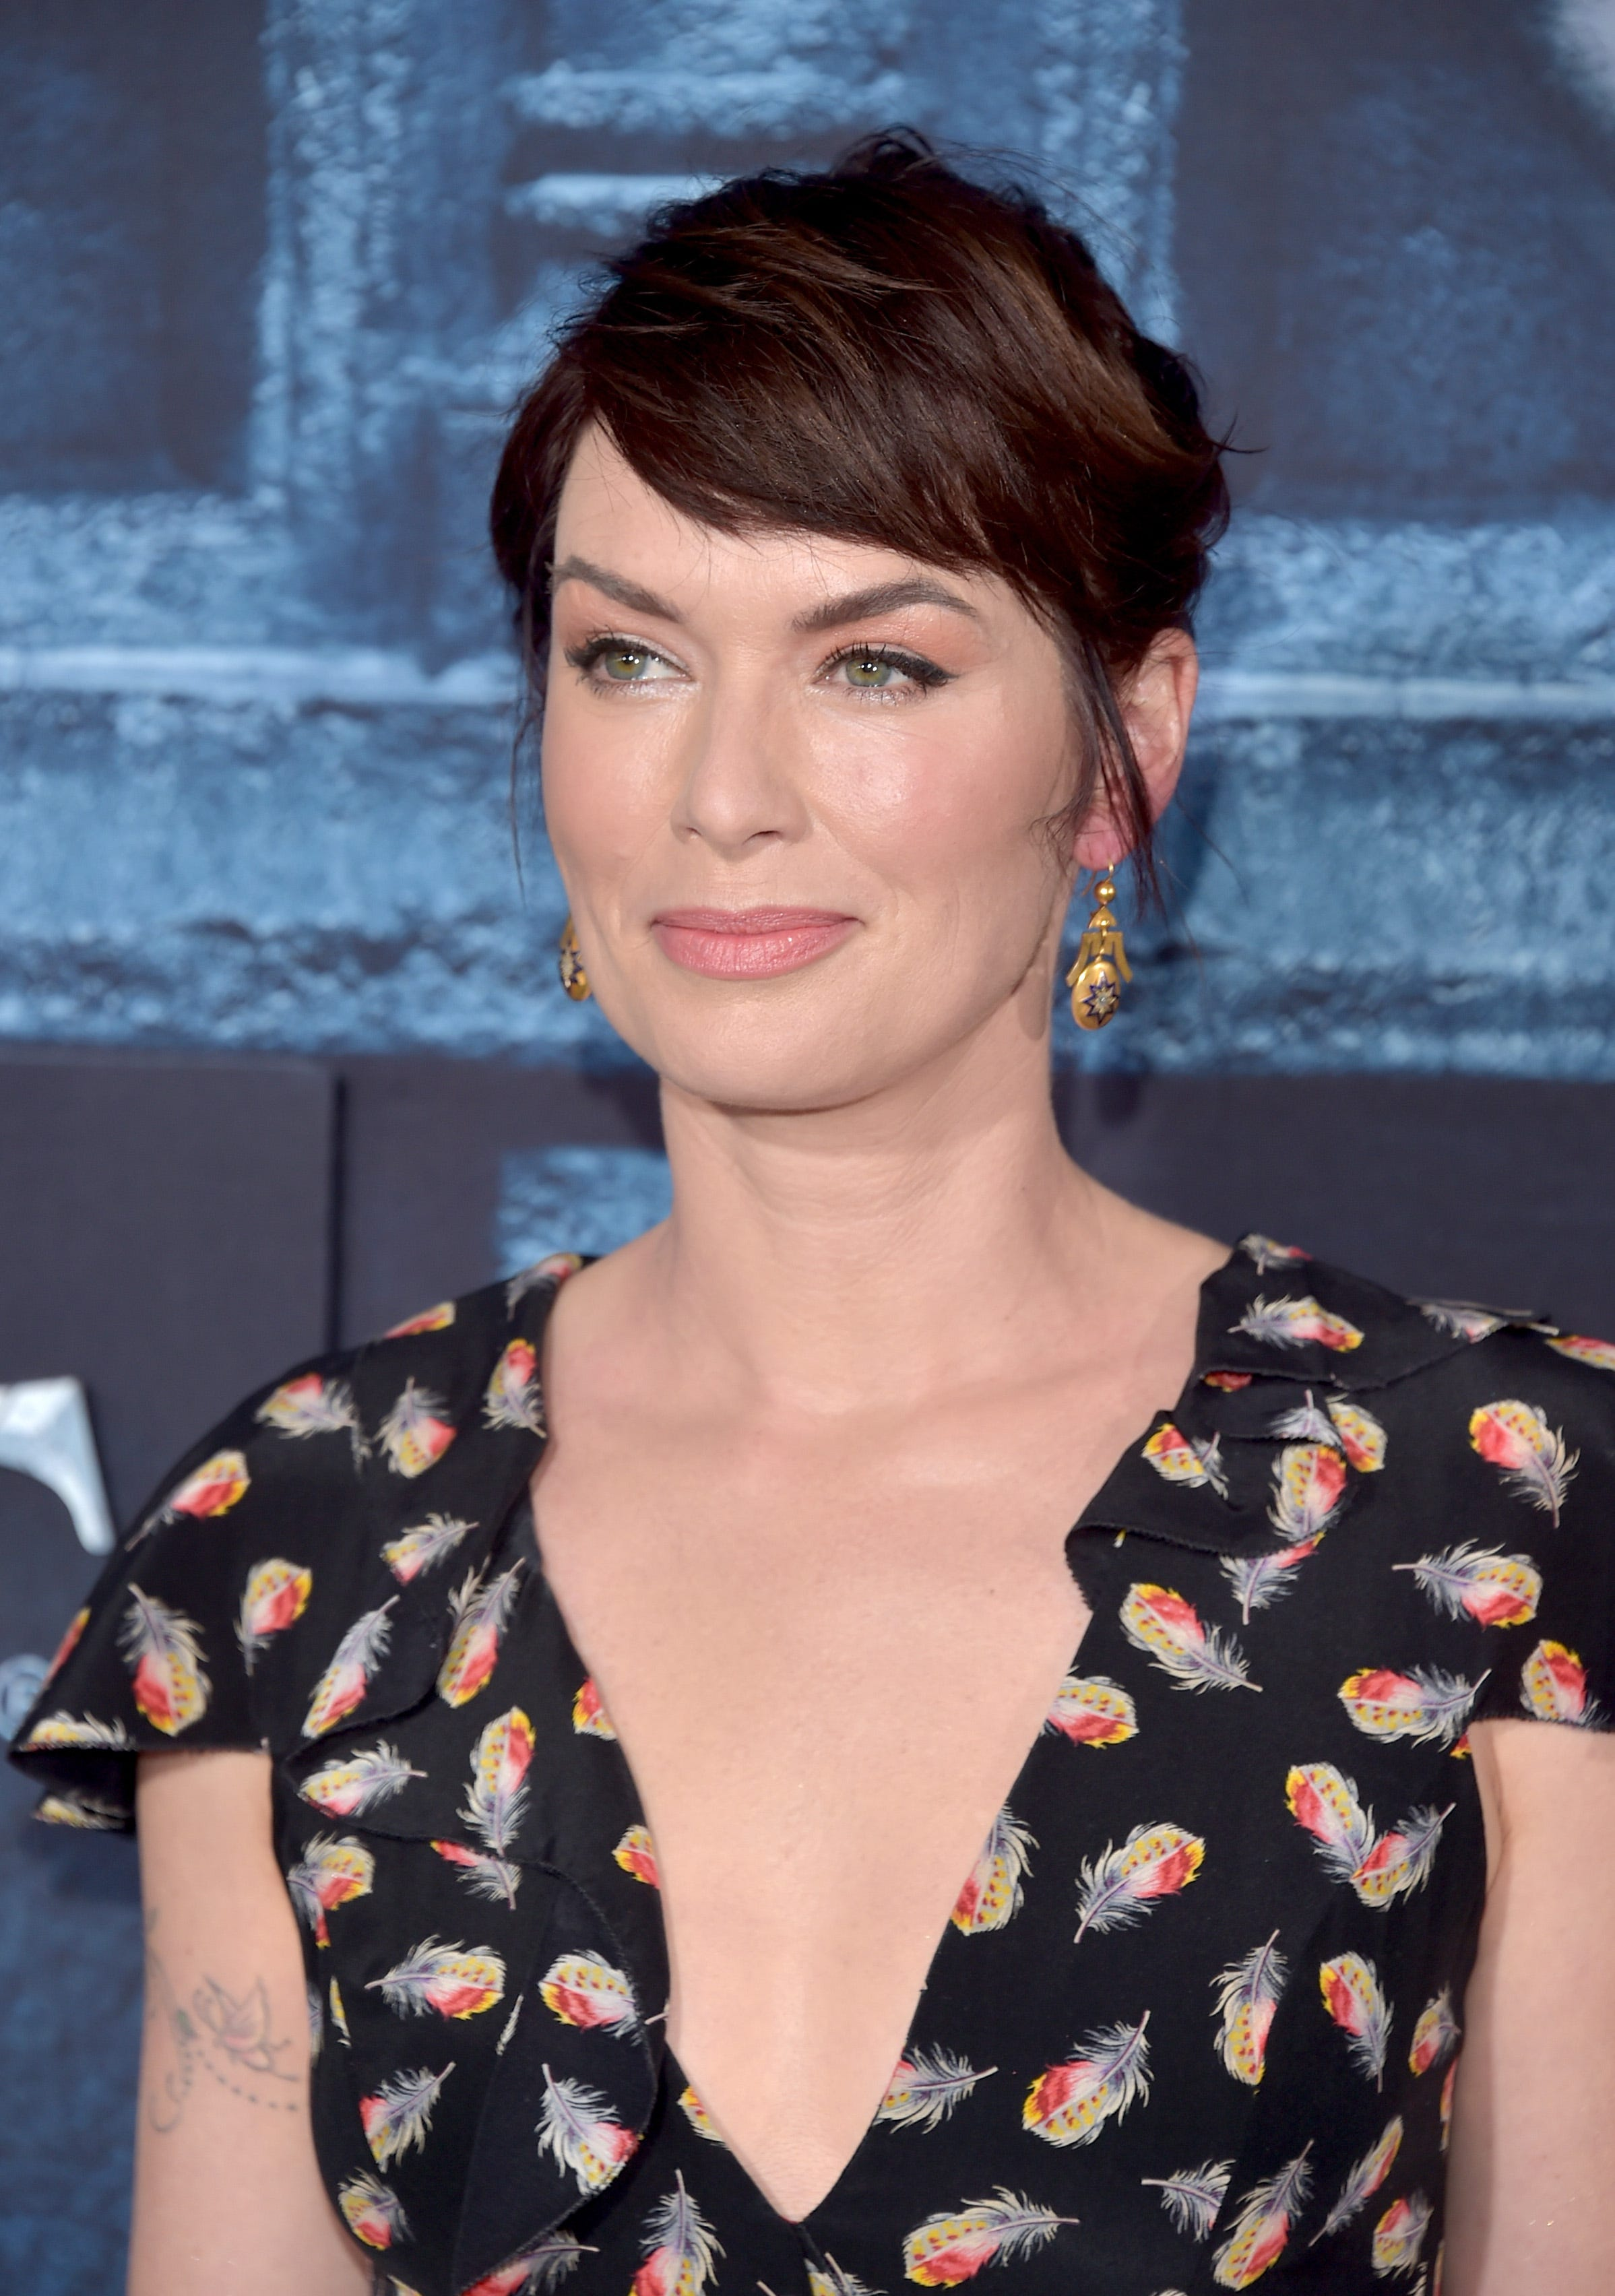 'GoT's Lena Headey: Turning down Harvey Weinstein 'impacted a decade of my working life'